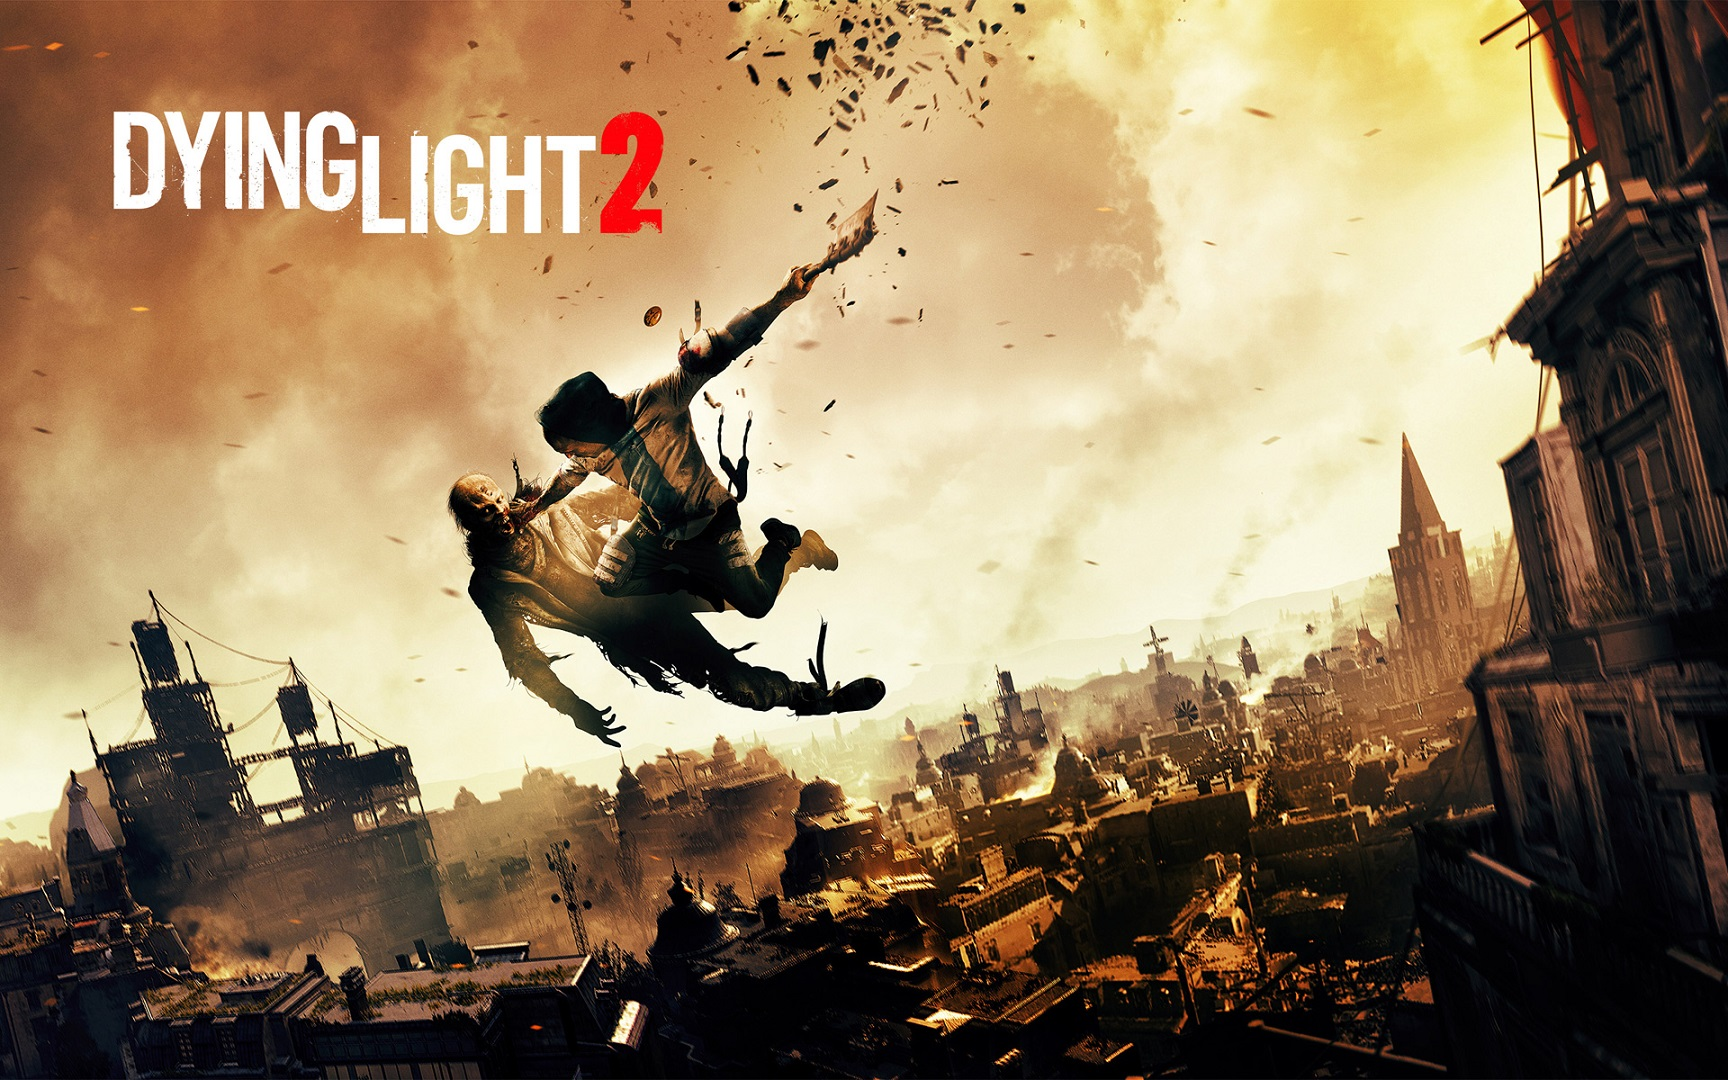 В сети появилось изображение коллекционного издания Dying Light 2. Неужели игру все-таки выпустят